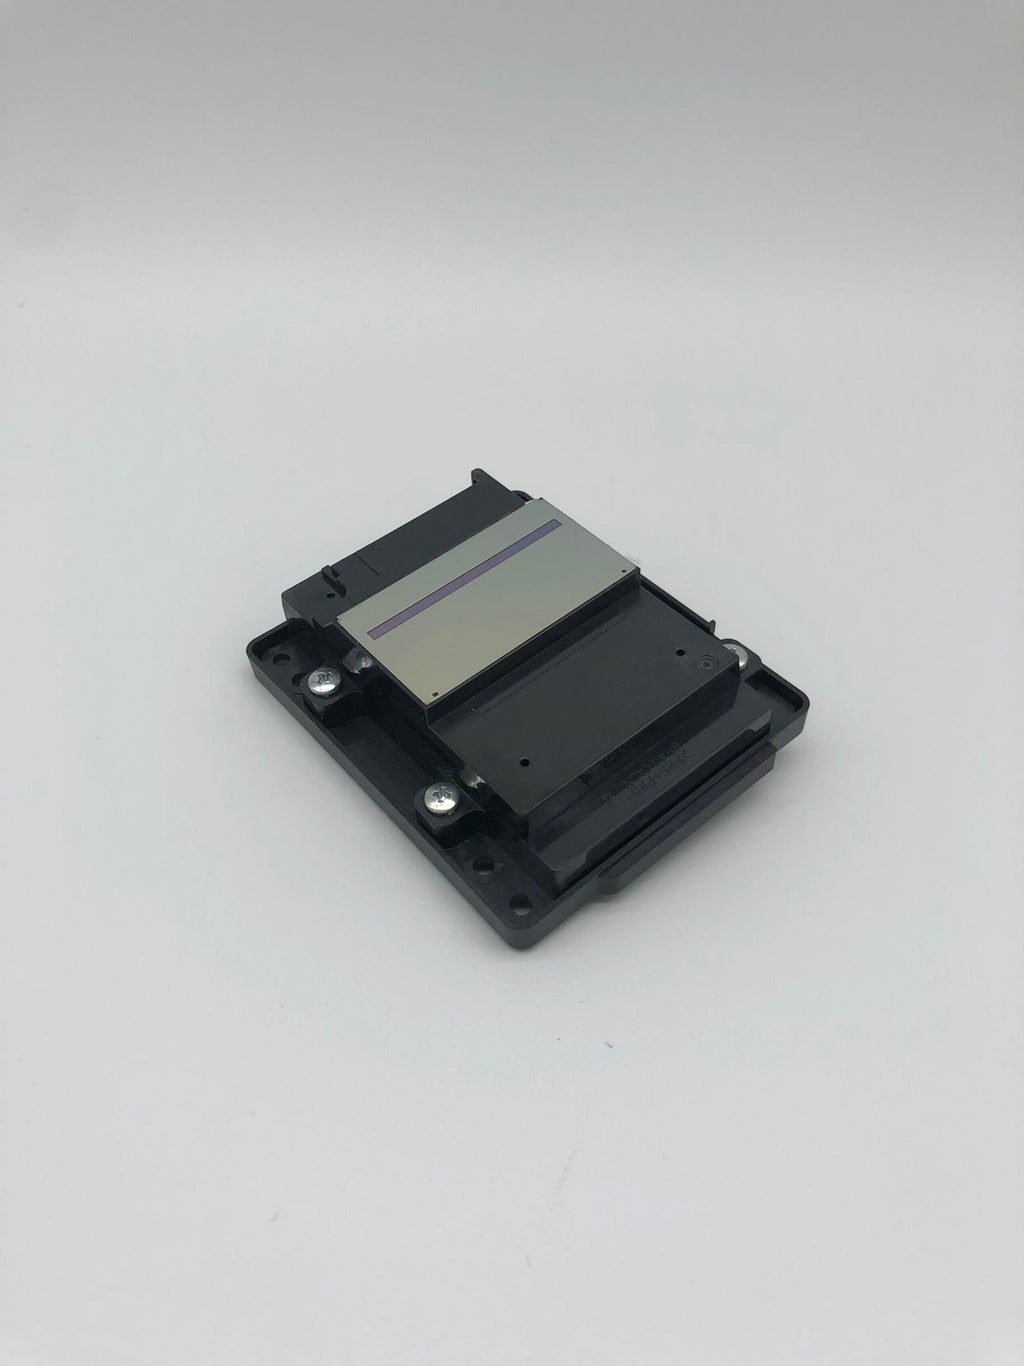 Printhead Printer Print Head for Epson WF-2650 WF-2651 WF-2660 WF-2661 WF-2750 WF2650 WF2651 WF2660 WF2661 WF2750 WF 2650 2660